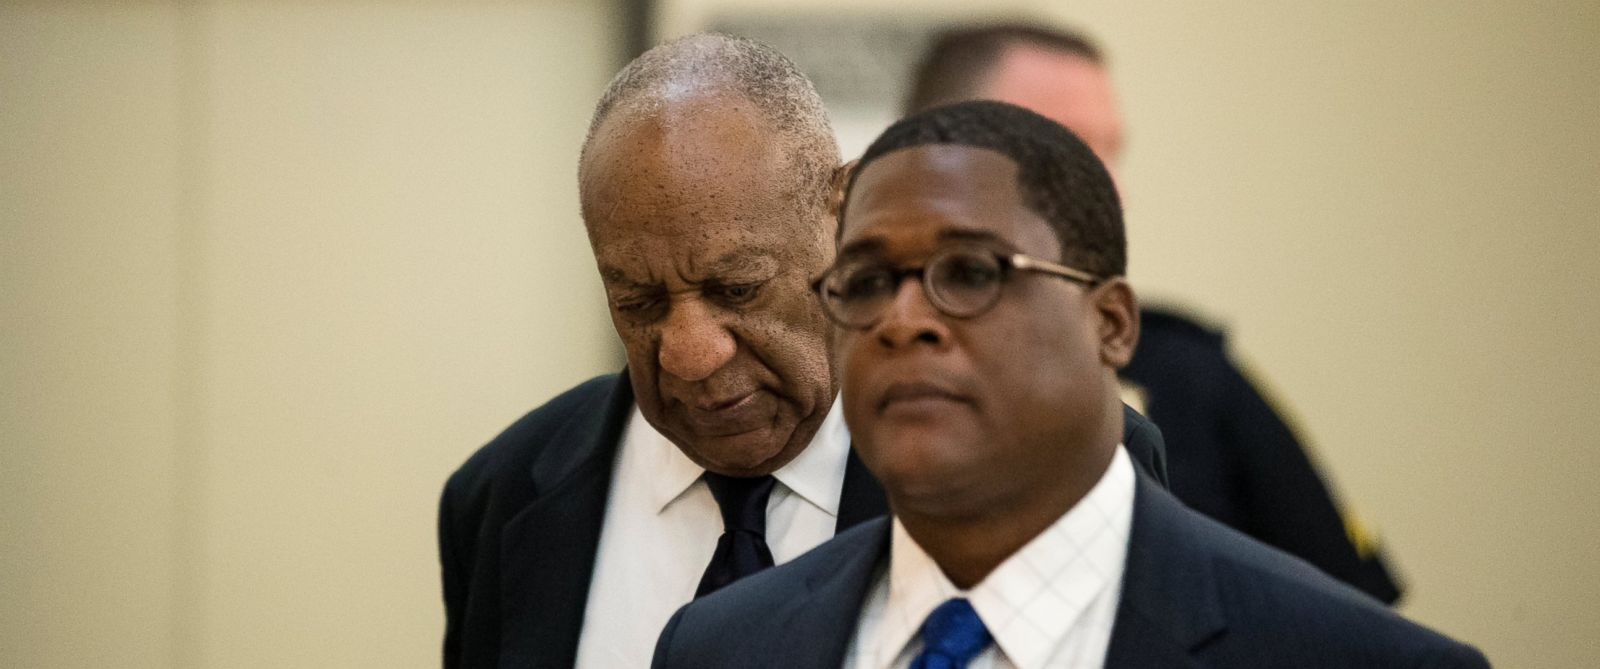 PHOTO: Bill Cosby walks to the courtroom with publicist Andrew Wyatt at the Montgomery County Courthouse as the jury deliberates in his sexual assault trial in Norristown, Penn., June 13, 2017